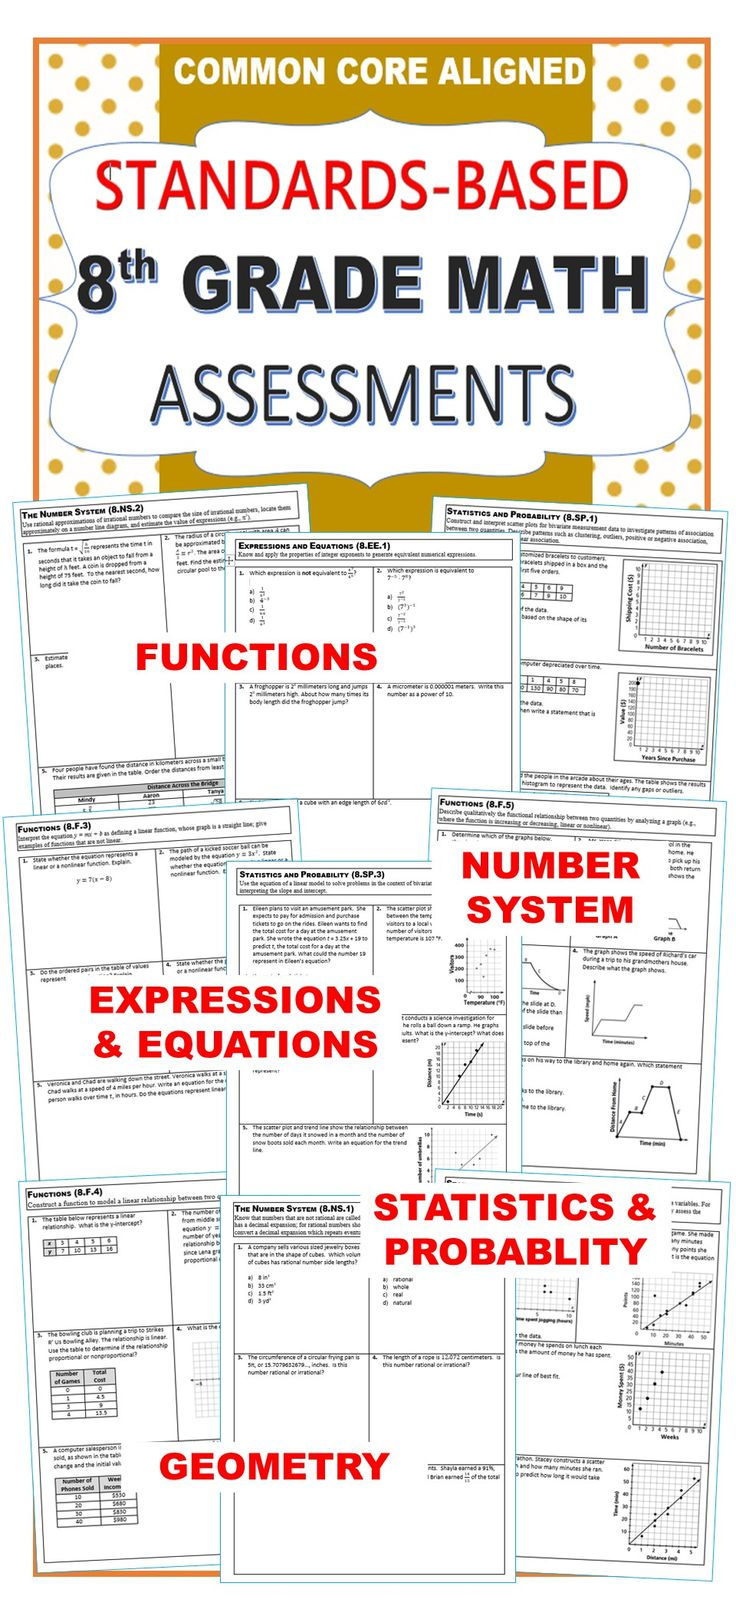 8th Grade Math Standards Based Assessments * All Standards* {Common Core} 1 page quick assessment for every common core math standard for 8th grade. It also contains a student checklist for each domain to track your students' mastery of these standards. Additionally, I have included a class tracking sheet to look at all of your students progress at a glance. ✔ The Number System (8NS) ✔ Expressions and Equations (8EE) ✔ Functions (8F) ✔ Geometry (8G) ✔ Statistics and Probability (8SP)